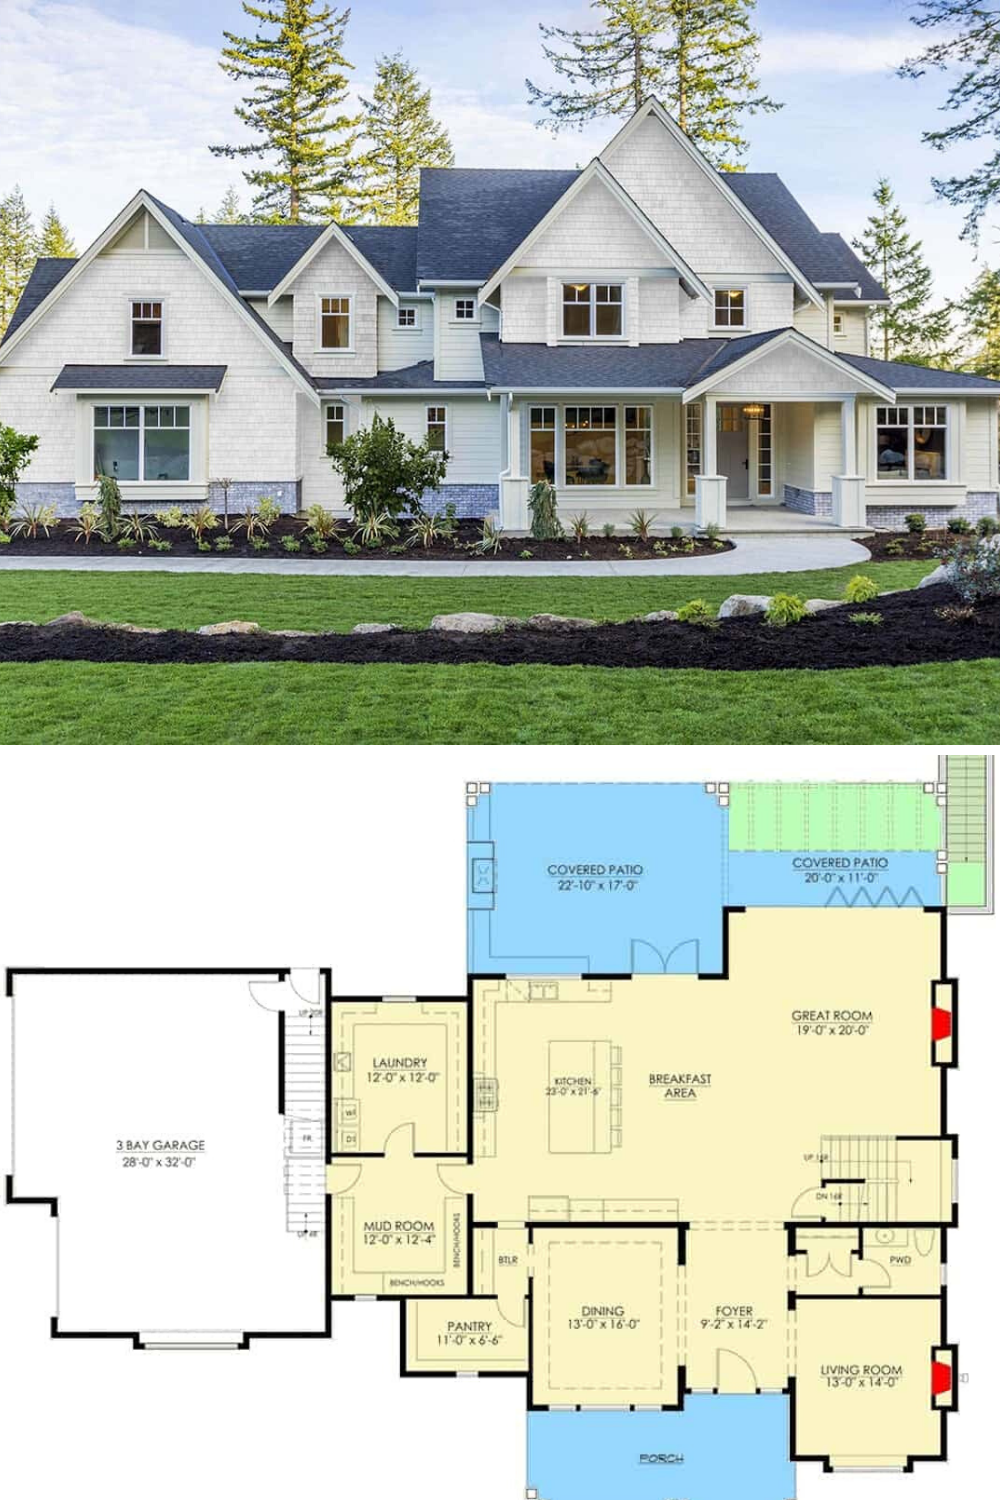 Architectural Designs Luxury Craftsman Farmhouse Plan 23364jd Gives You 3 Levels Of Living If You Craftsman Farmhouse Mansion Floor Plan Craftsman House Plans